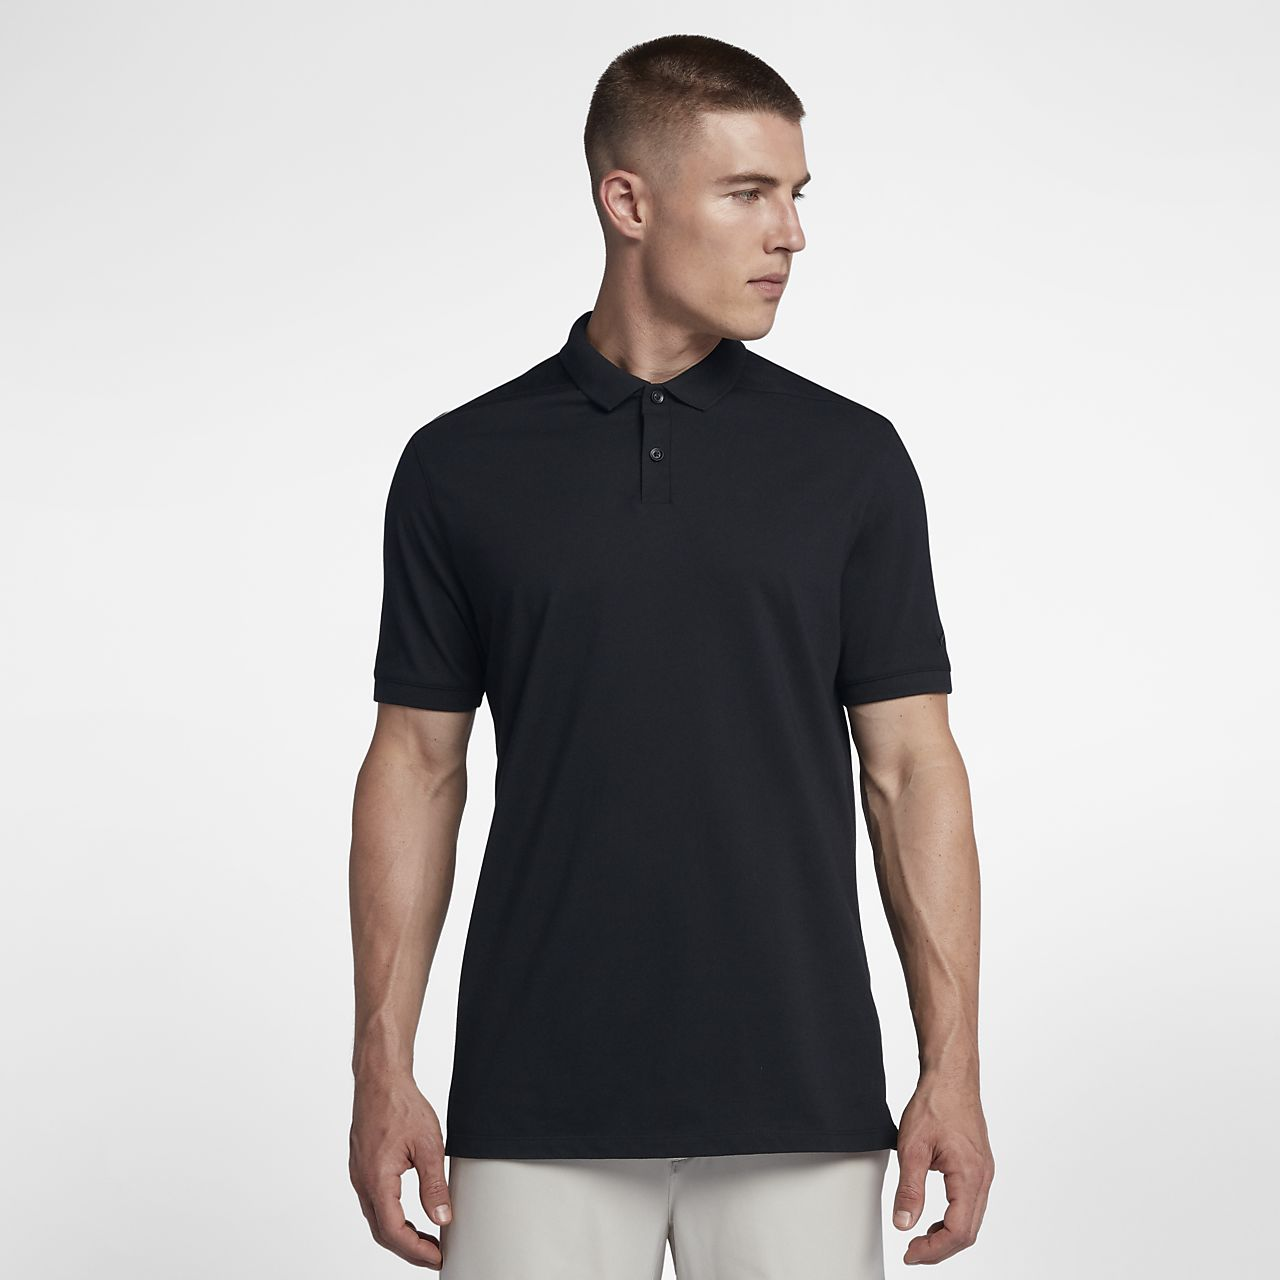 e88793ae56 Nike Dri-FIT Men's Golf Polo. Nike.com HU